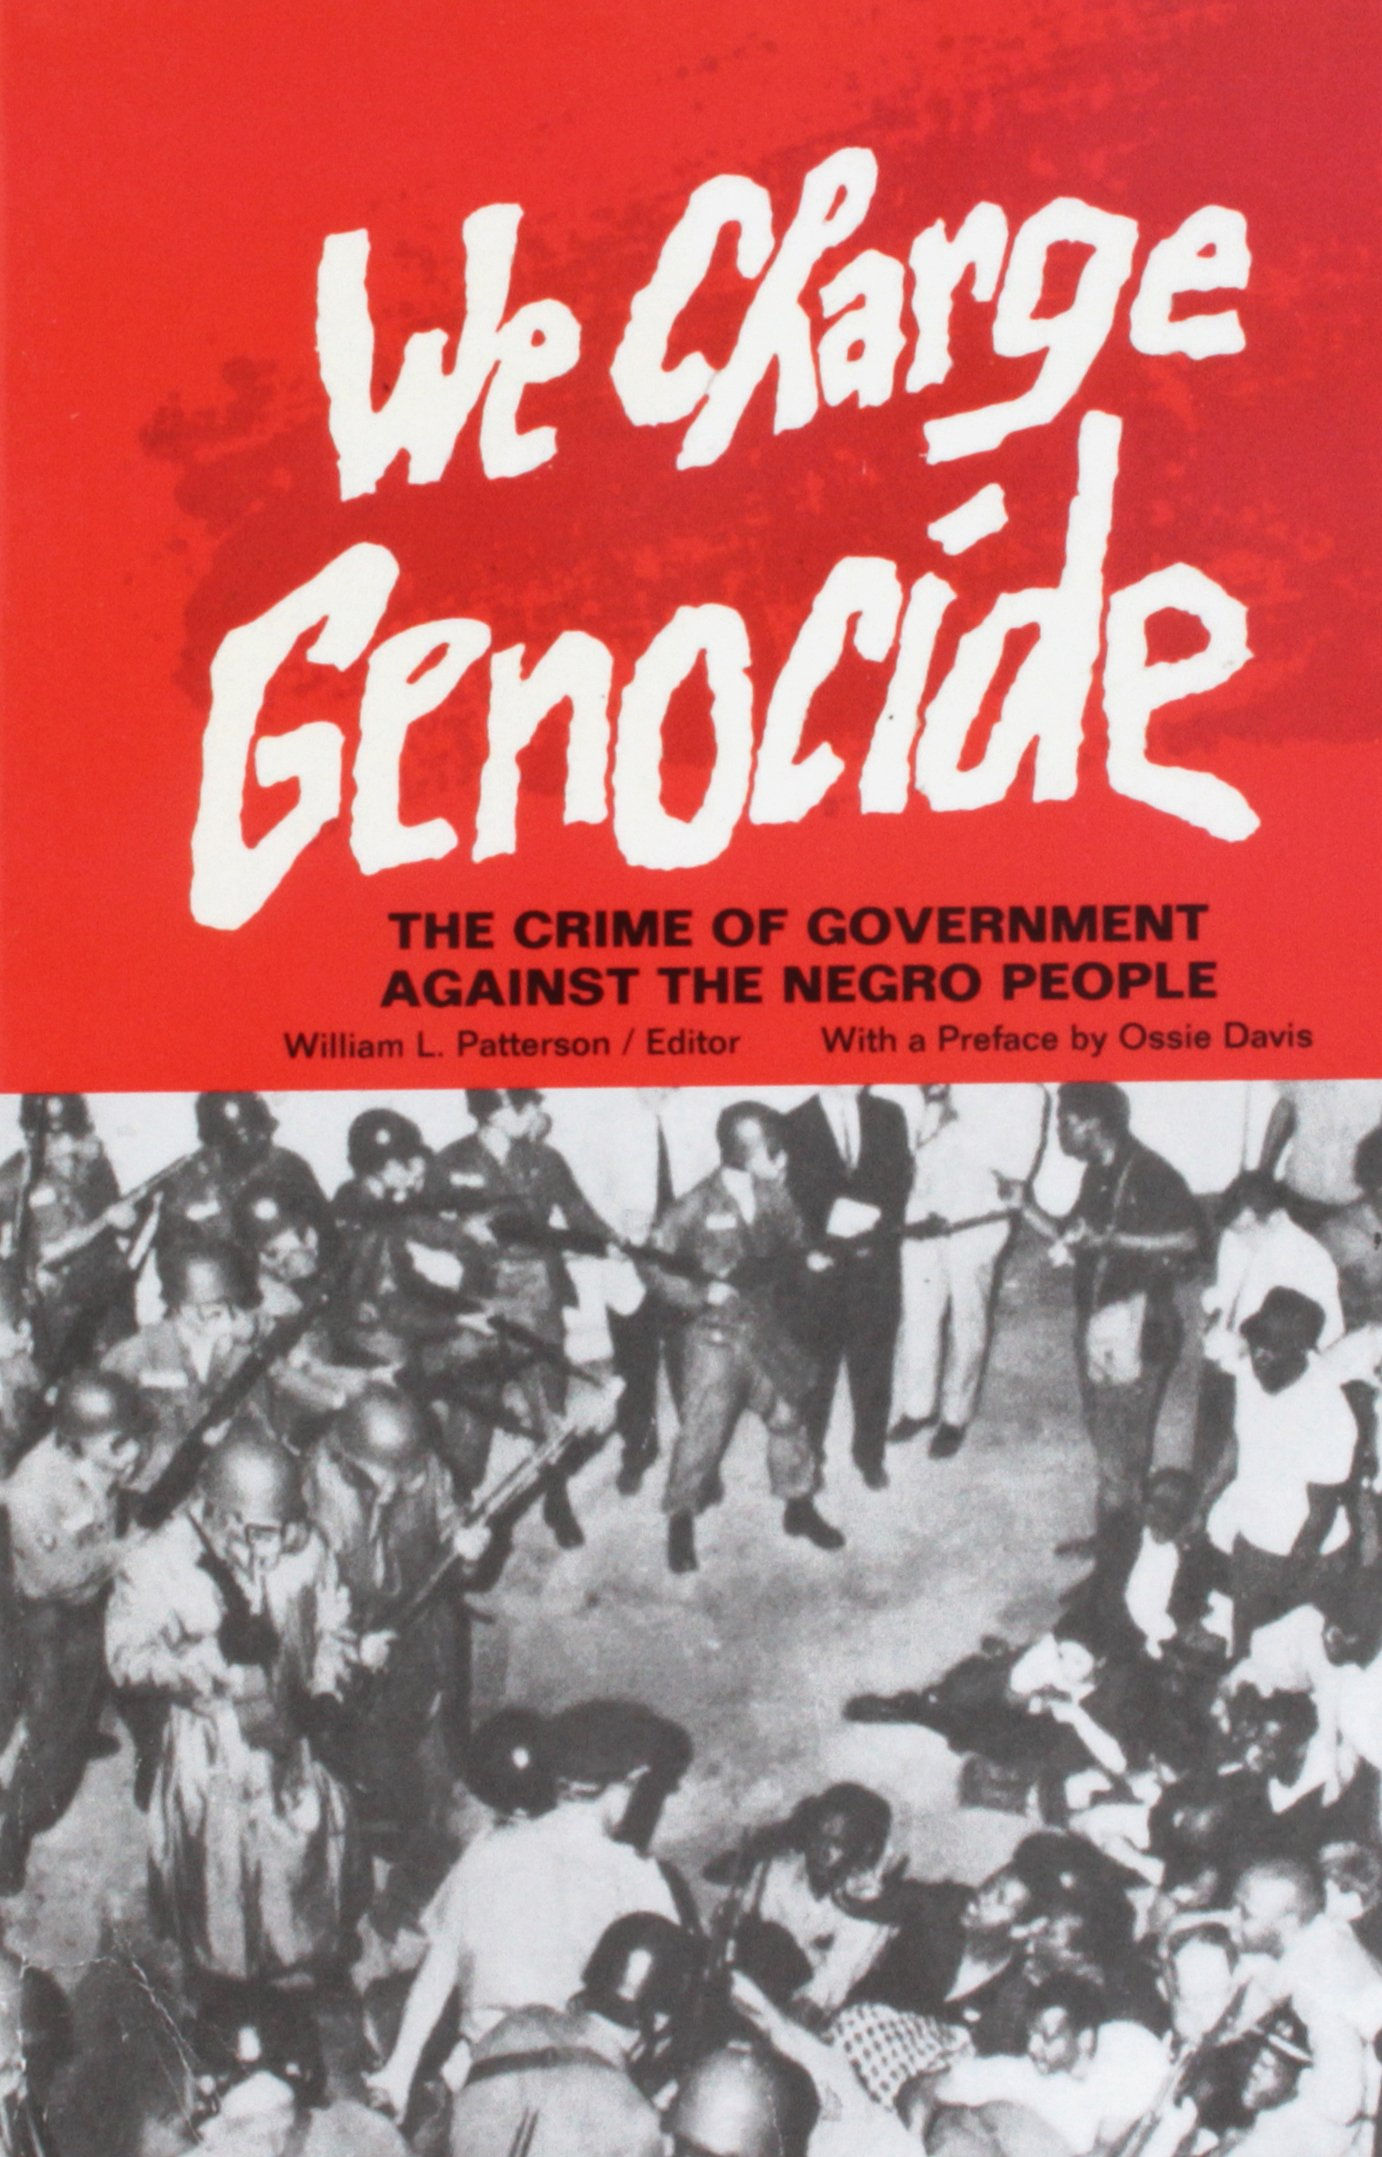 https://www.blackpast.org/wp-content/uploads/We_Charge_Genocide-The_Crime_of_Government_Against_the_Negro_People_by_William_L_Patterson_-1970.jpg